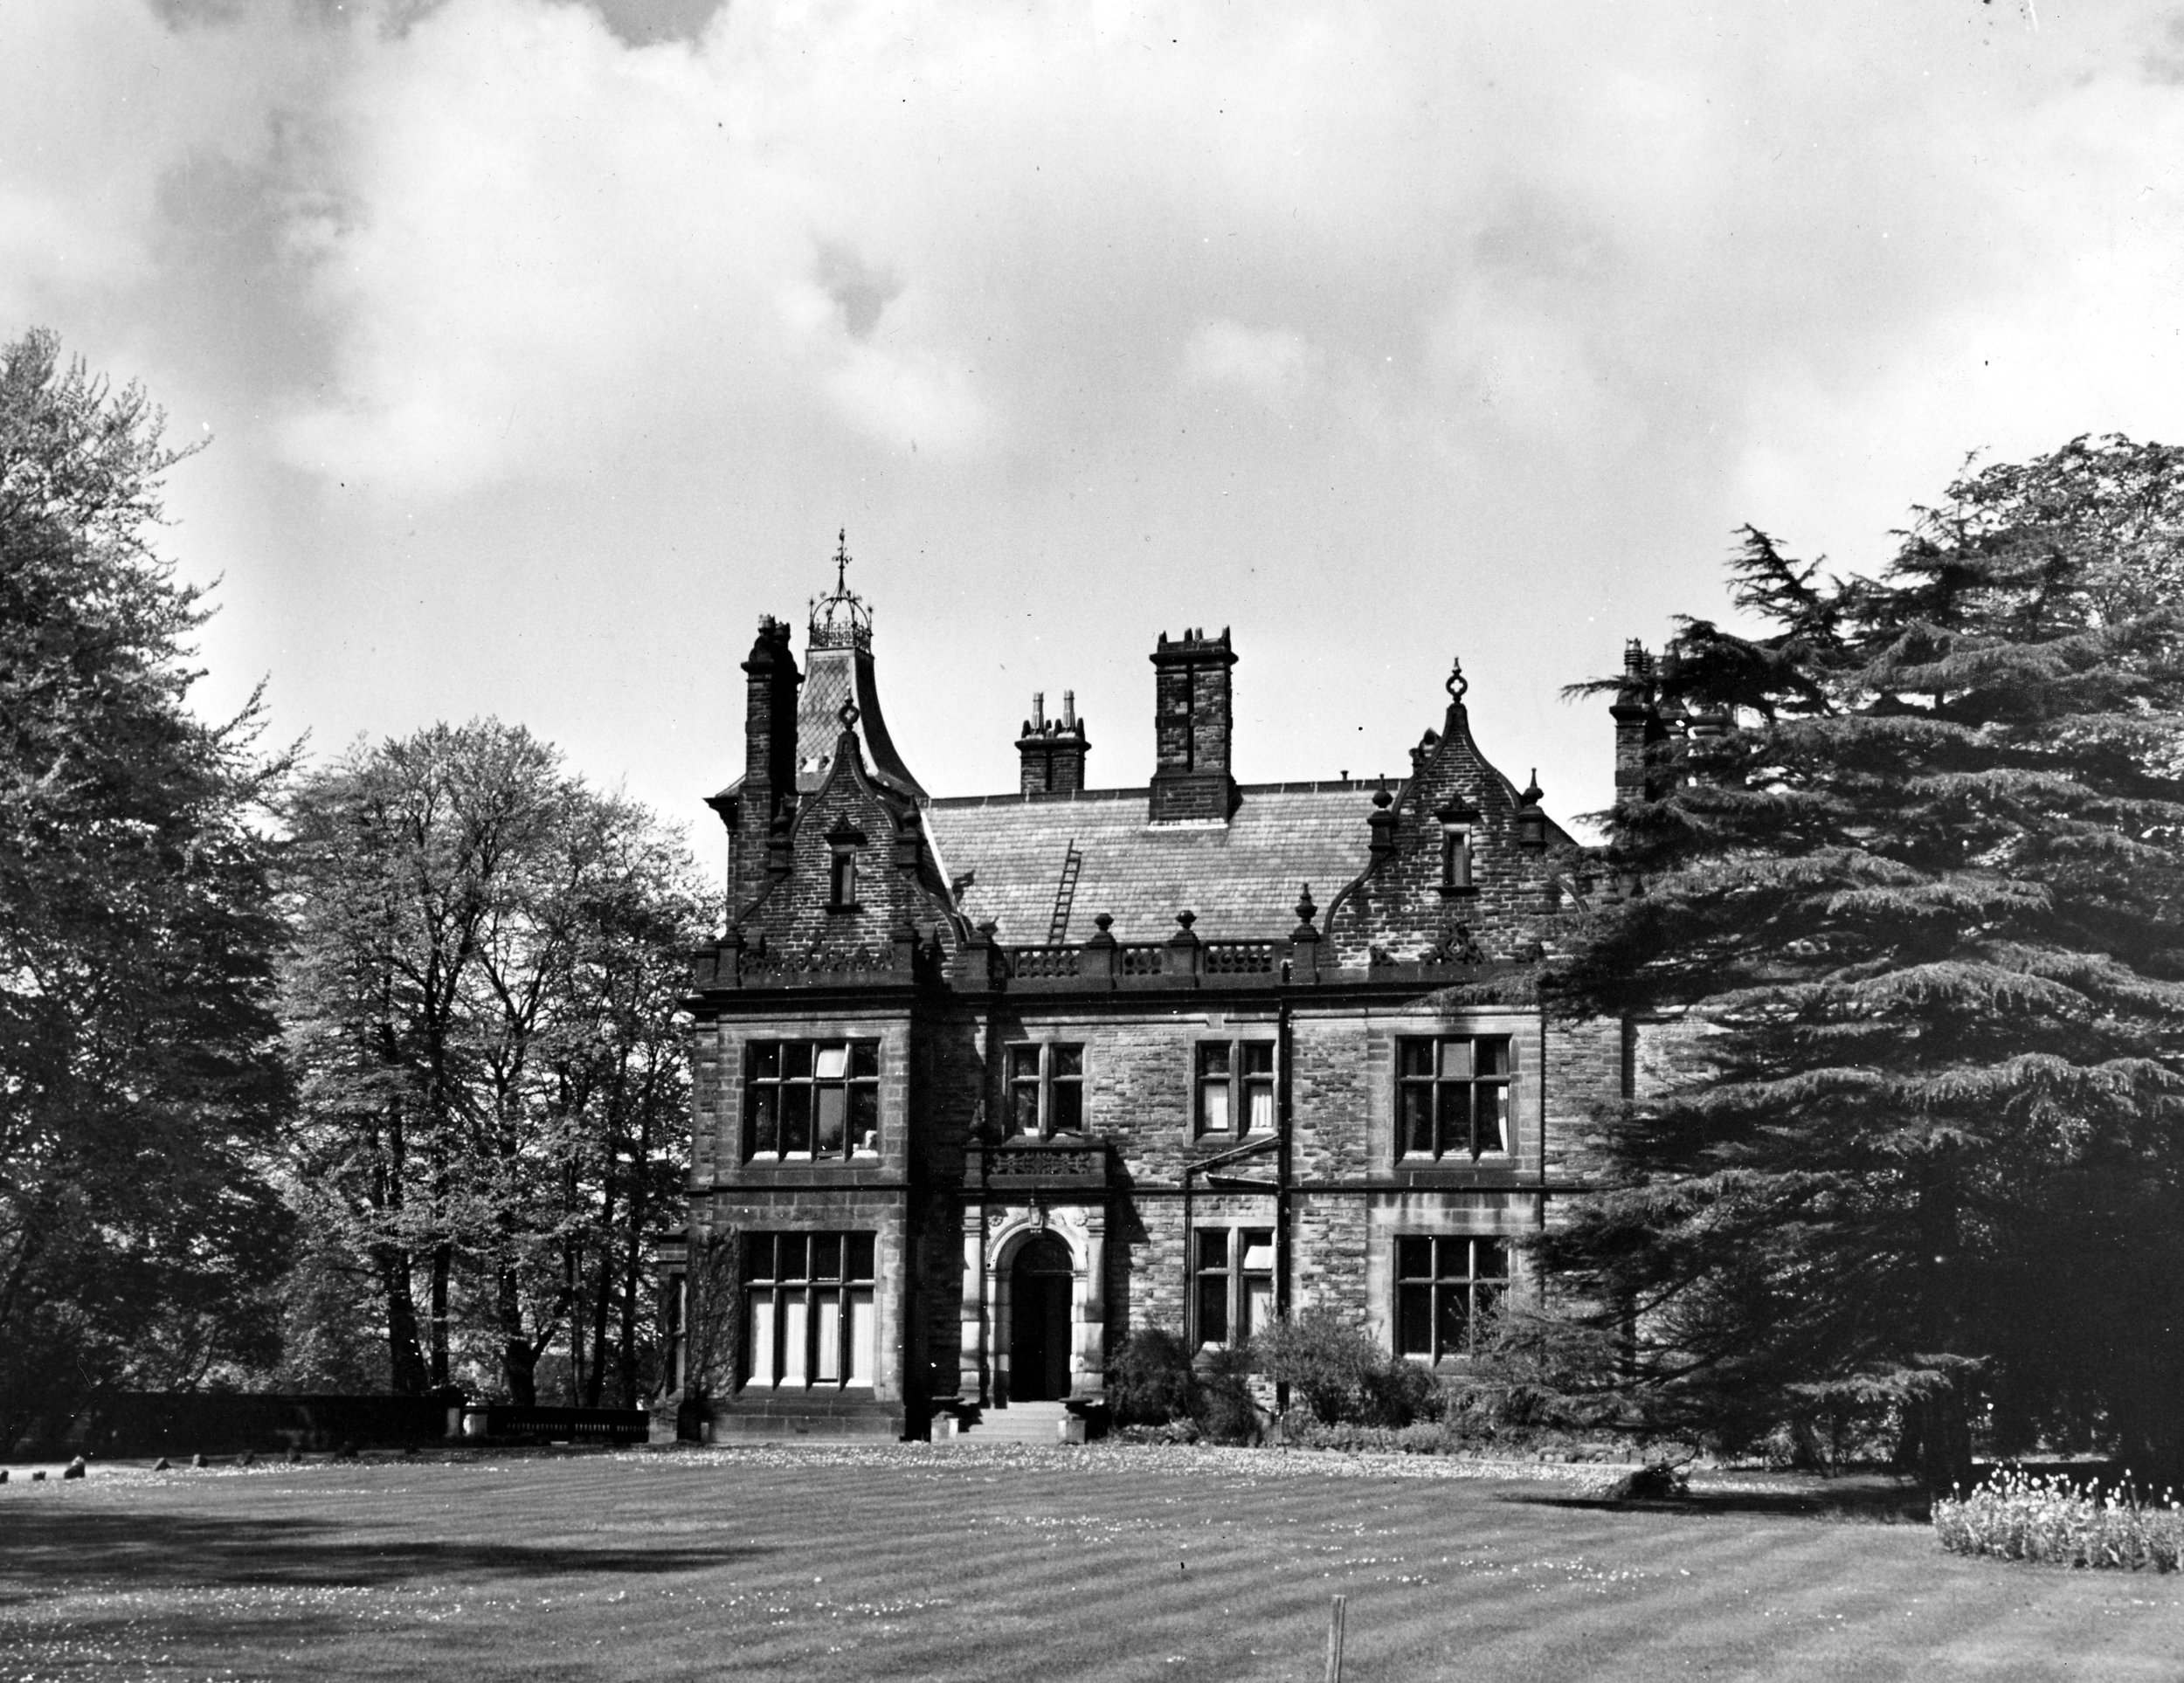 The Elms / Oxley Hall